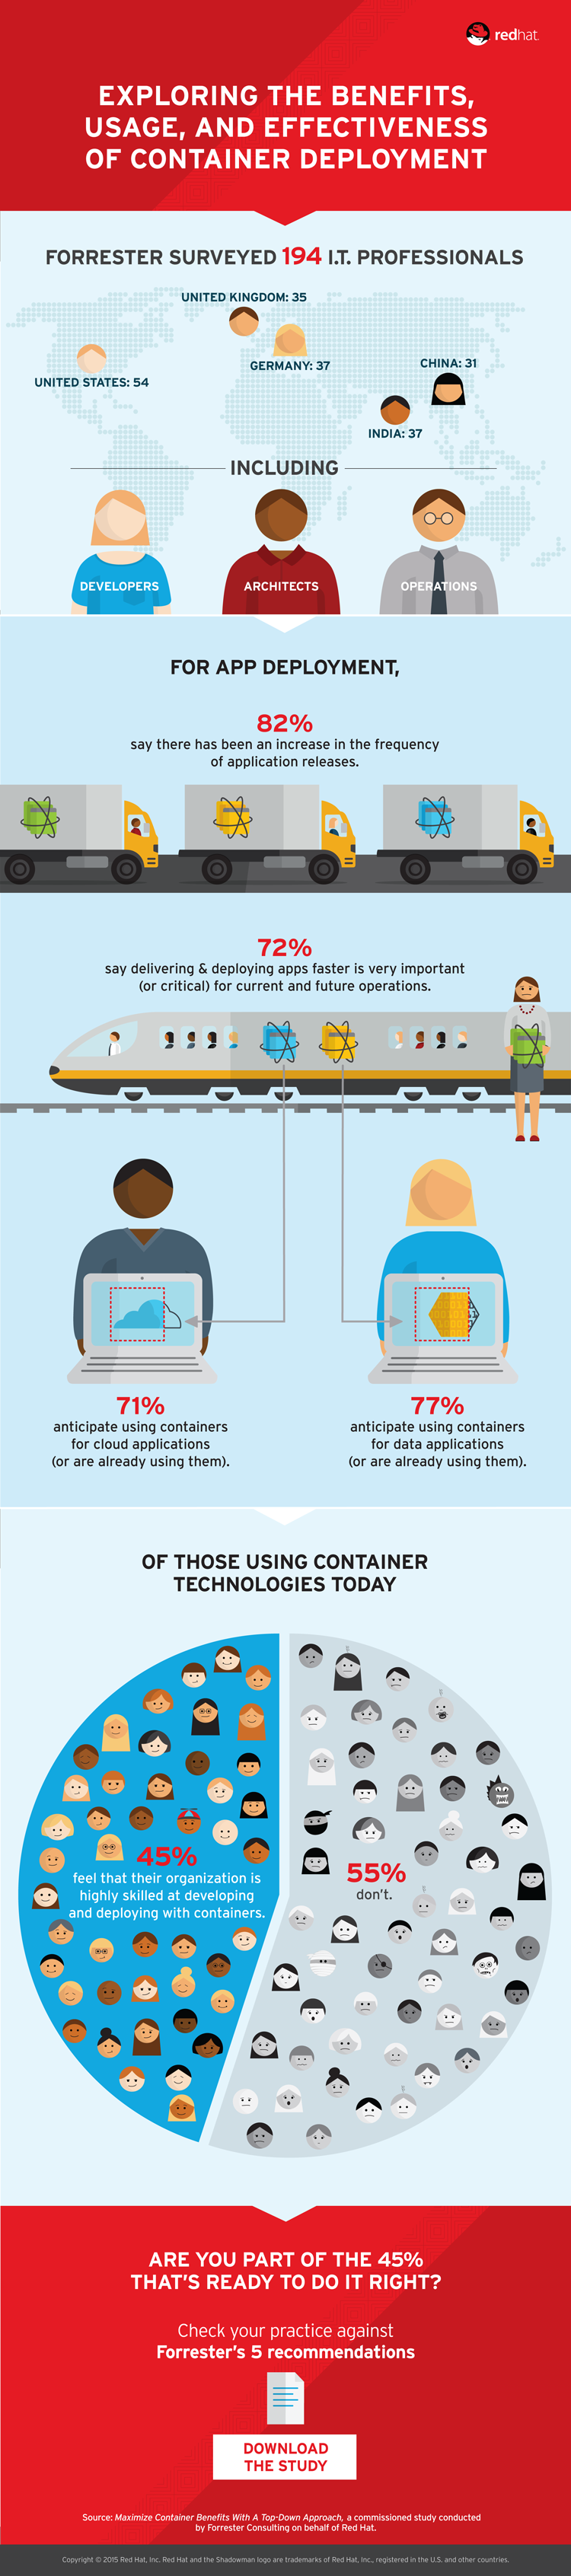 Are You Ready for Linux Containers in Your Enterprise?